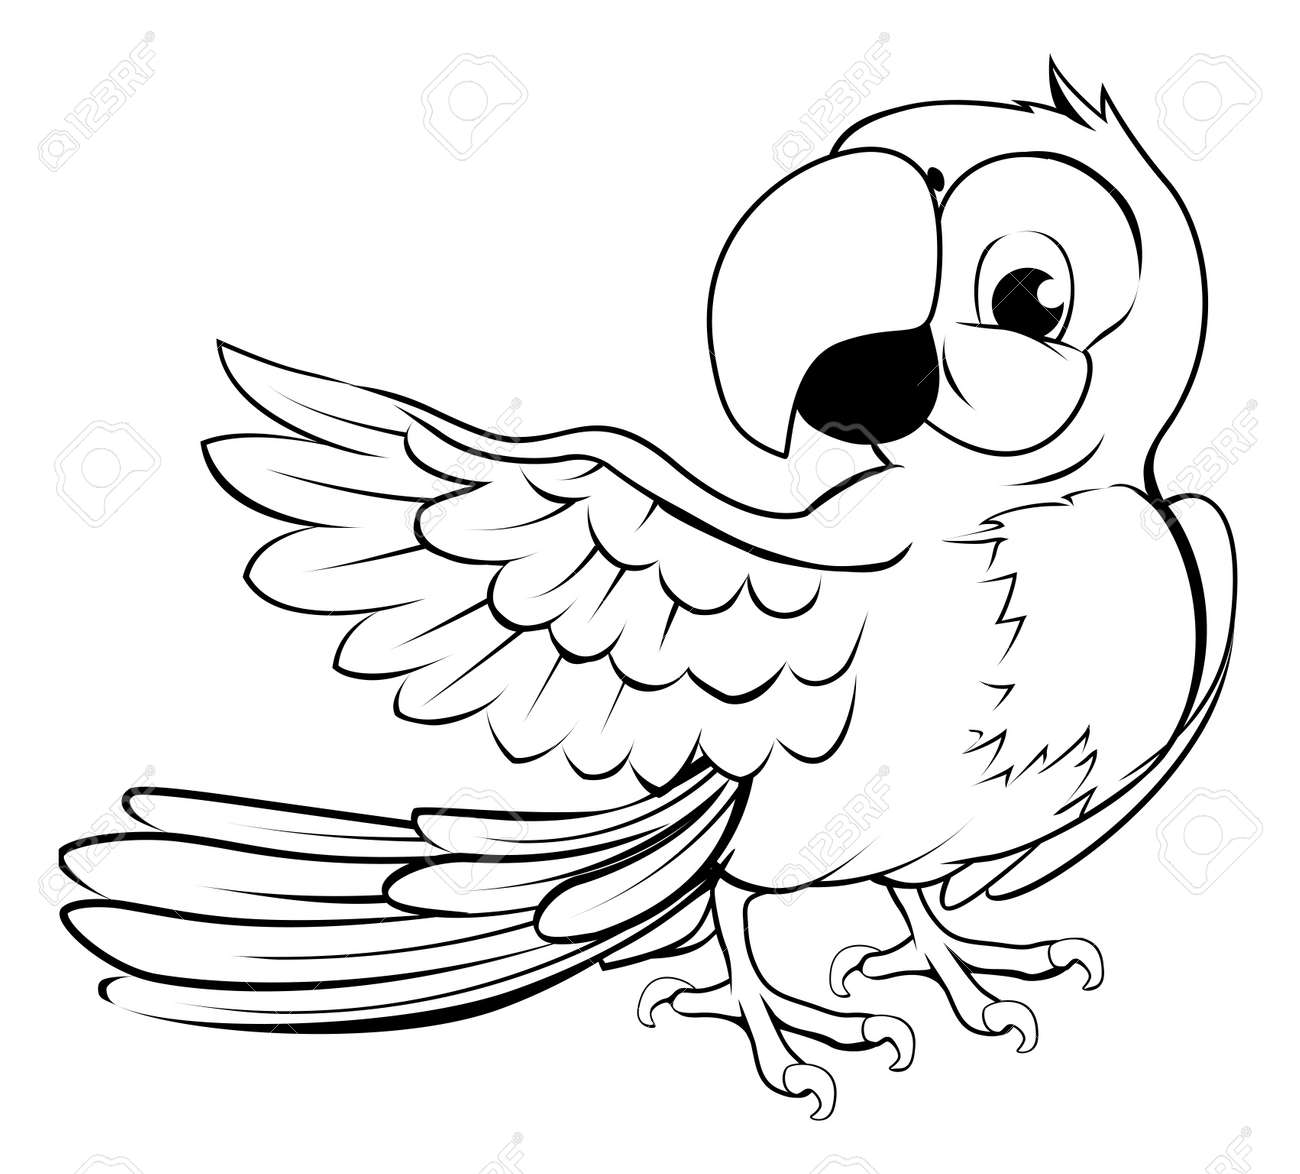 cartoon parrot character in black outline pointing with its wing stock vector 21887230